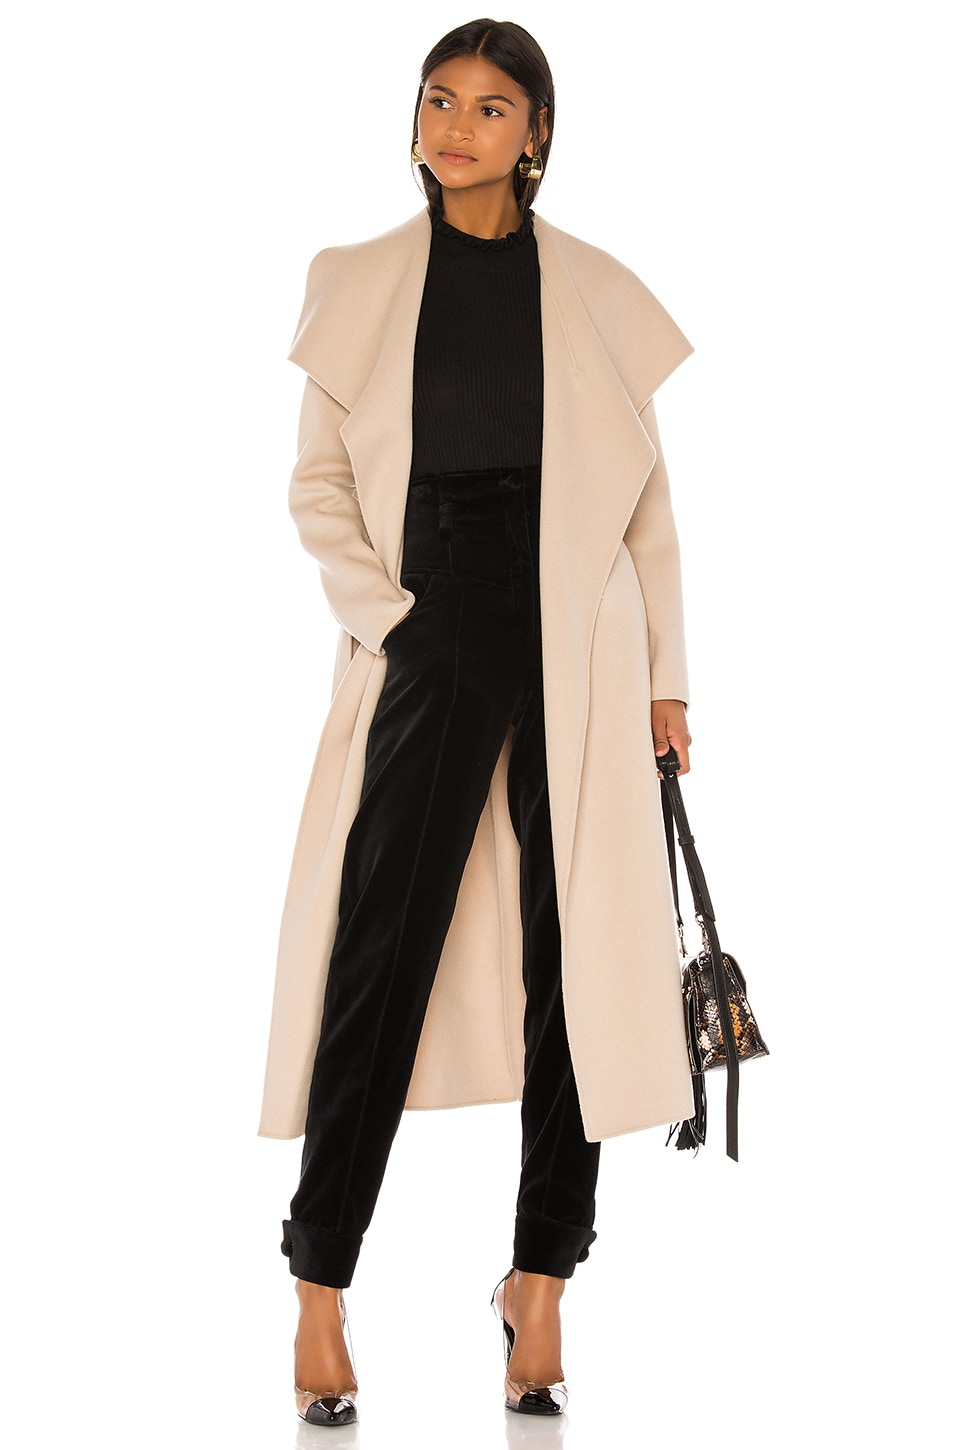 Mackage Mai Trench Coat in Sand